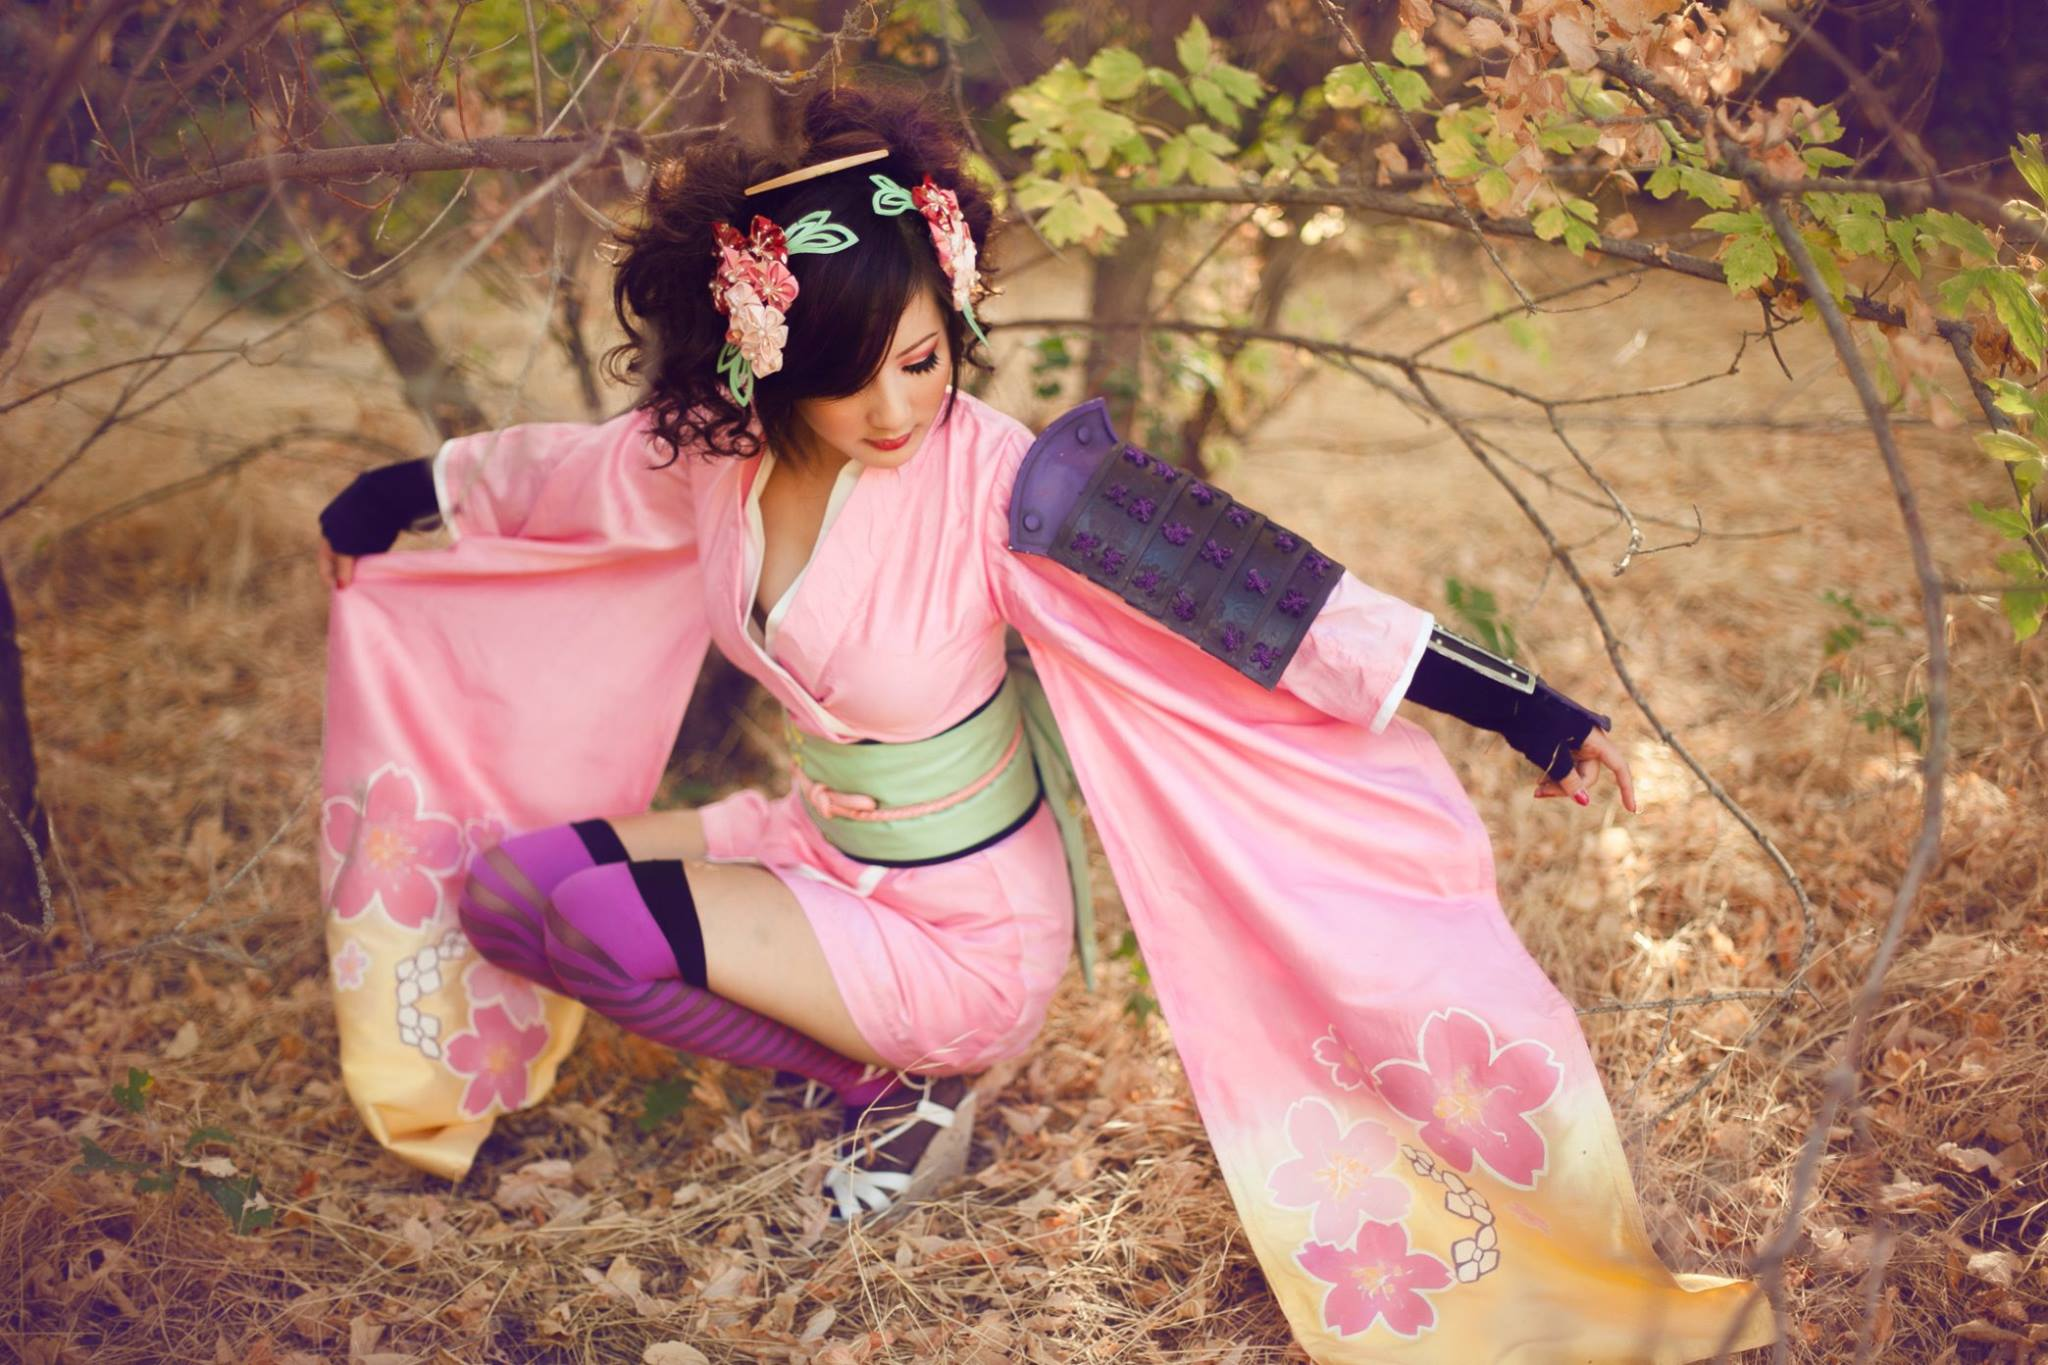 Momohime-cosplay-livia-chu-tricia-davidge-photography Day-